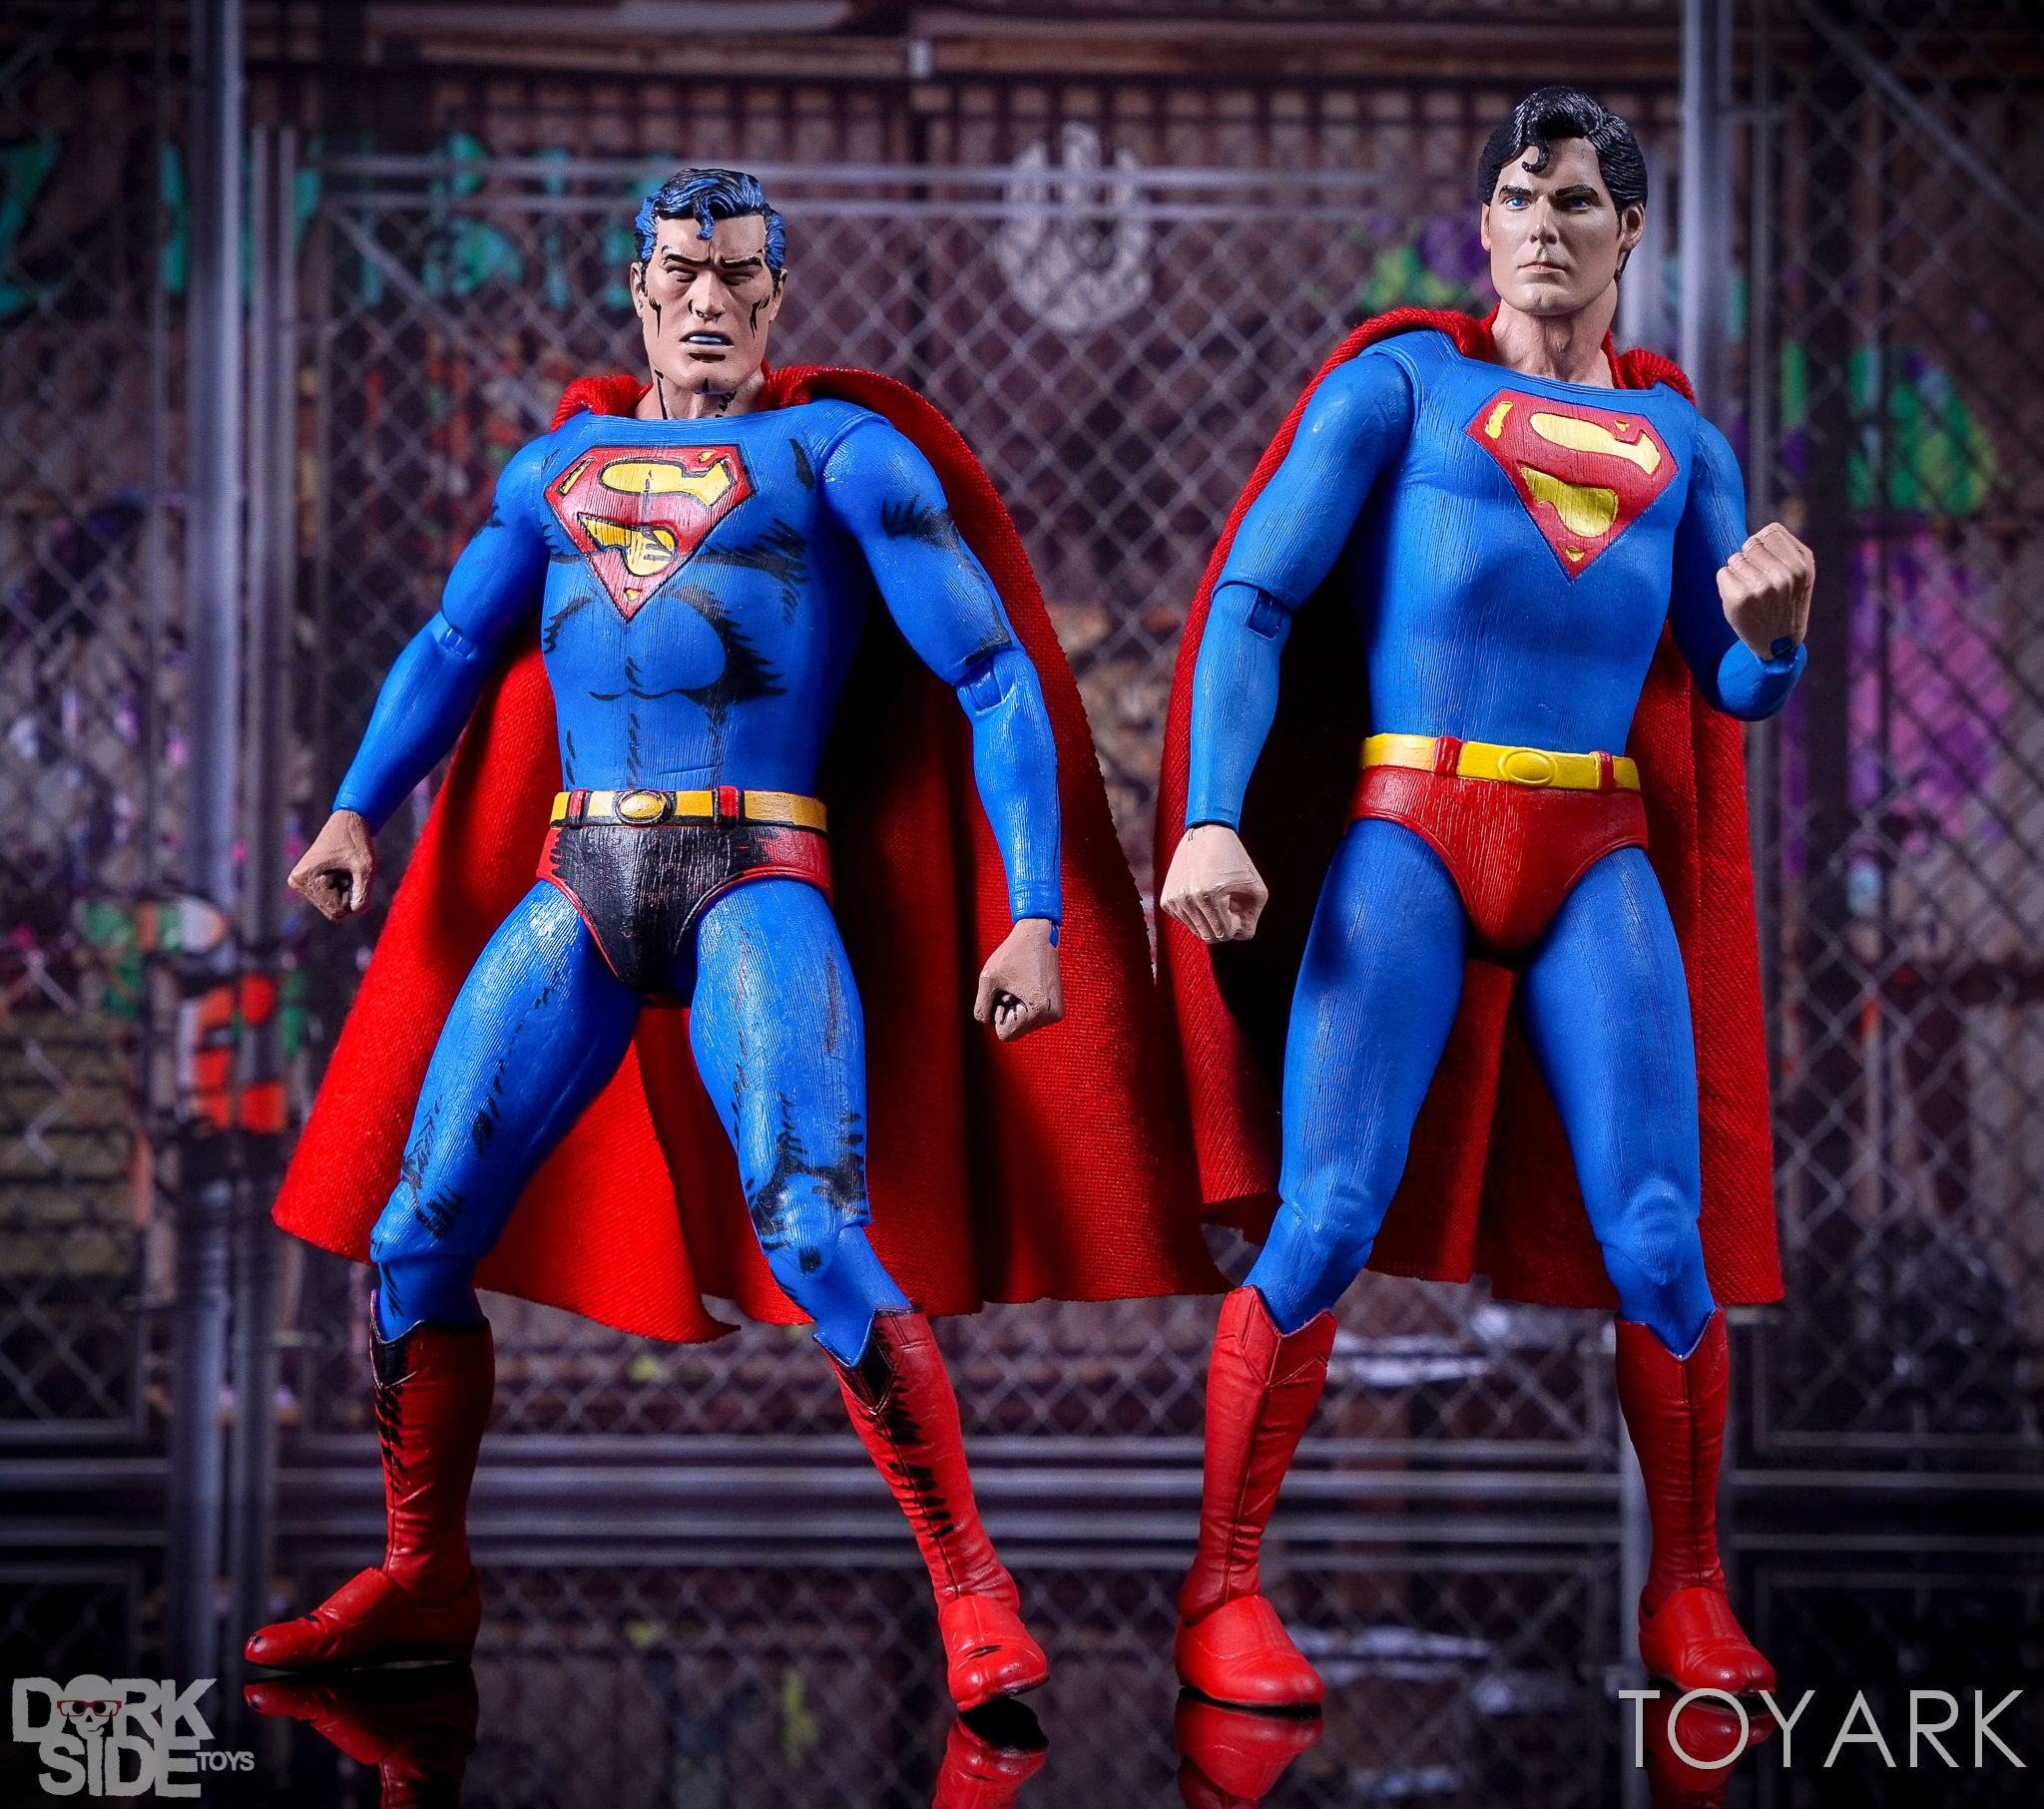 http://news.toyark.com/wp-content/uploads/sites/4/2017/02/NECA-Ali-vs-Superman-Set-050.jpg